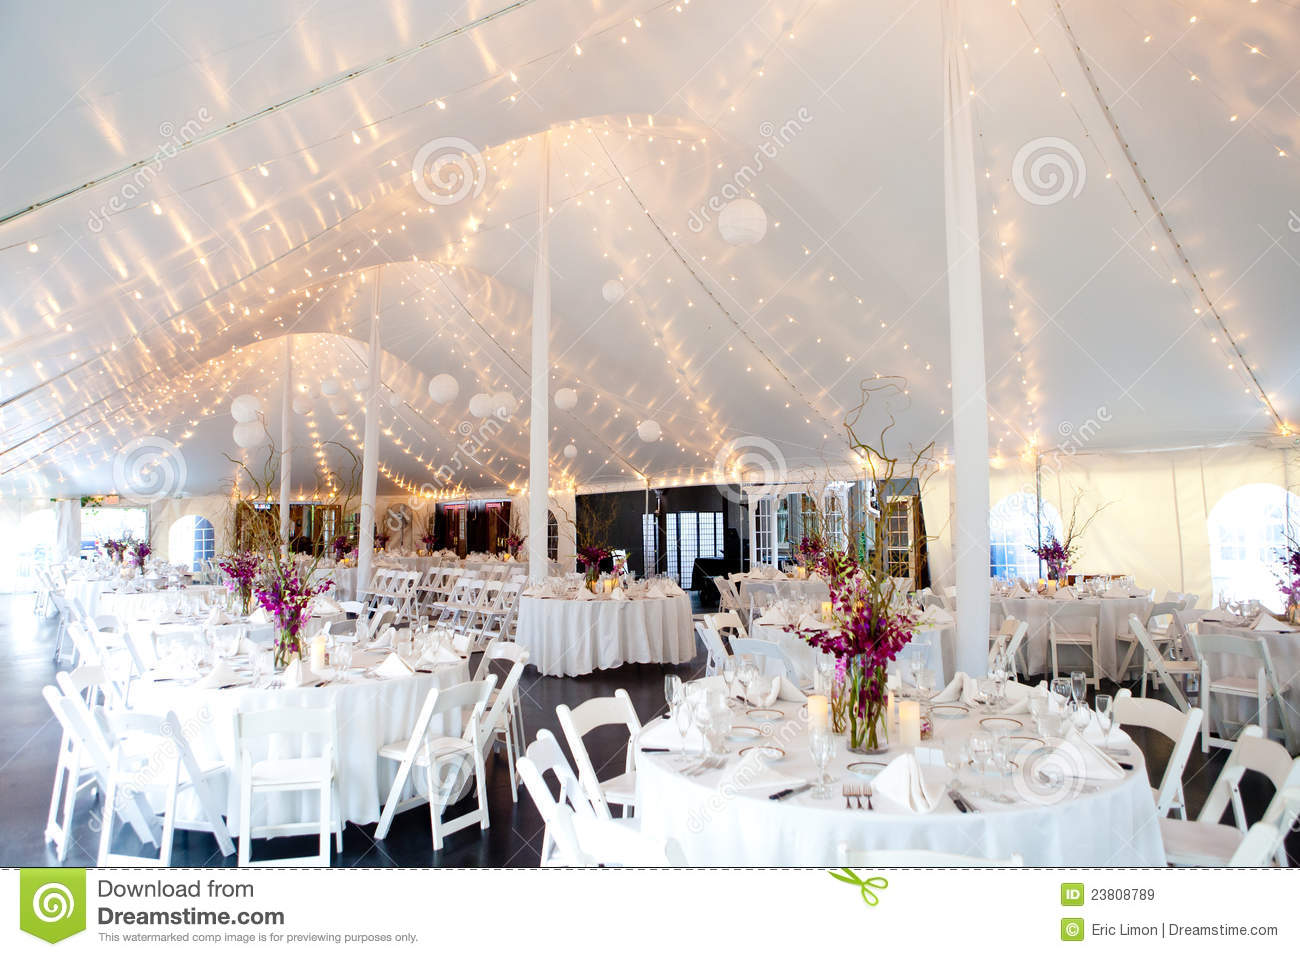 white dining chairs set of 4 walmart game inside a wedding tent royalty free stock images - image: 23808789